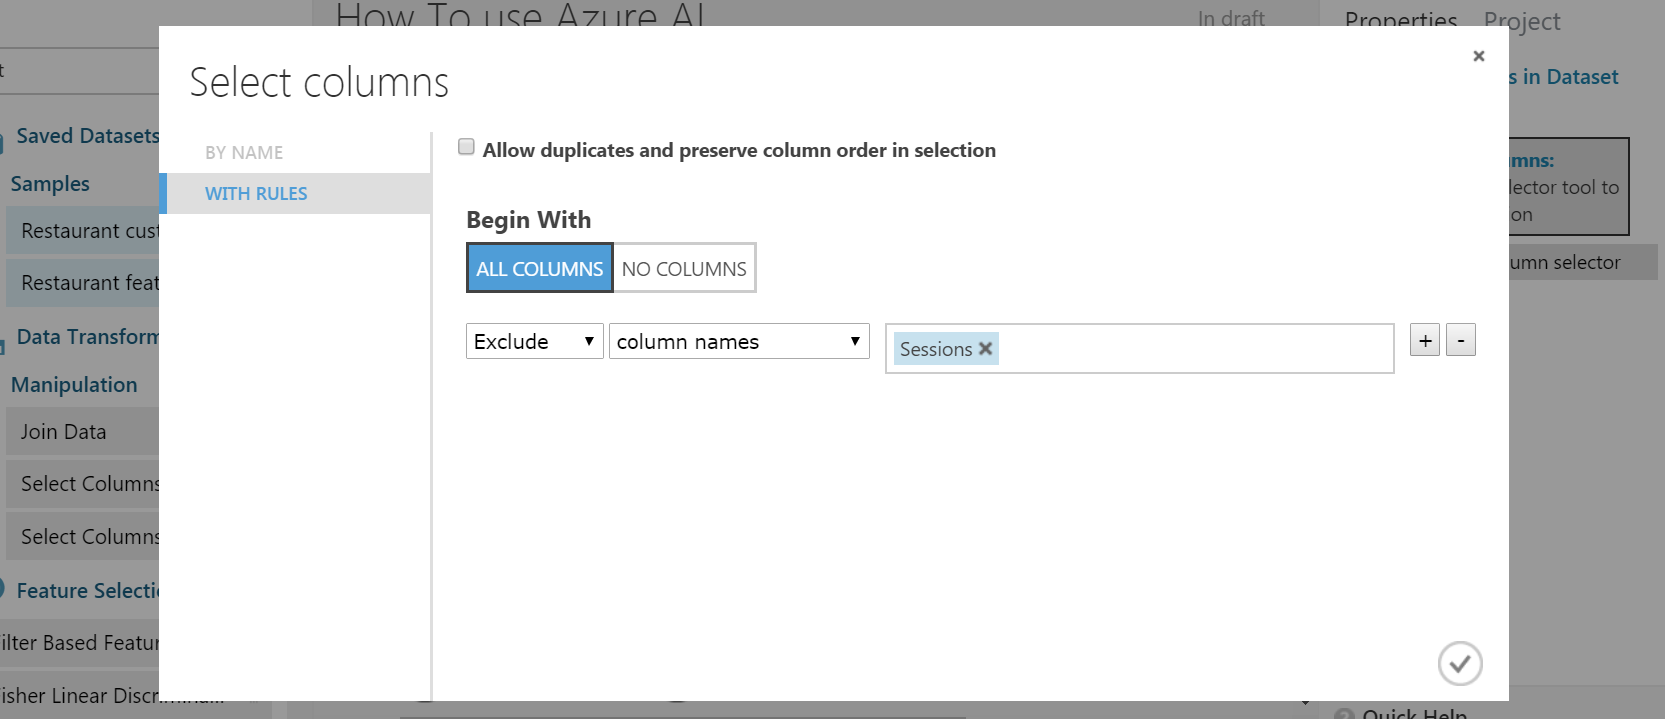 variable selection in azure